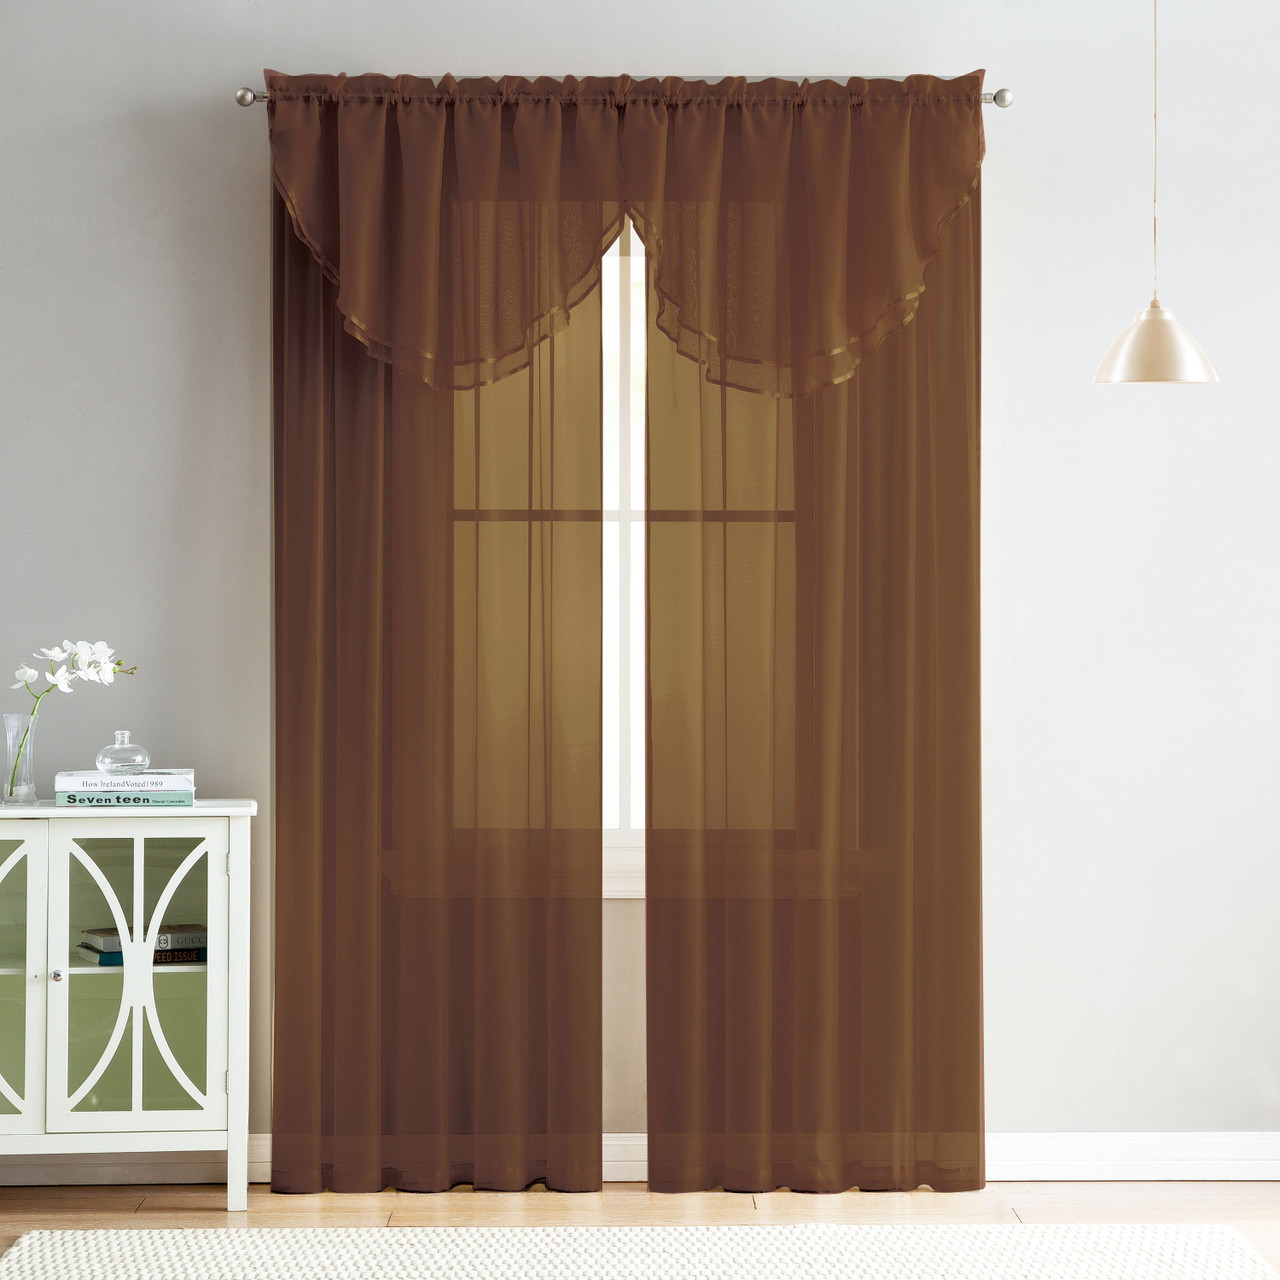 4 Piece Sheer Window Curtain Set For Living Room Dining Room Bay Windows 2 Voile Valance Curtains And 2 Panels 84 In Long Chocolate Brown My Infinity Store